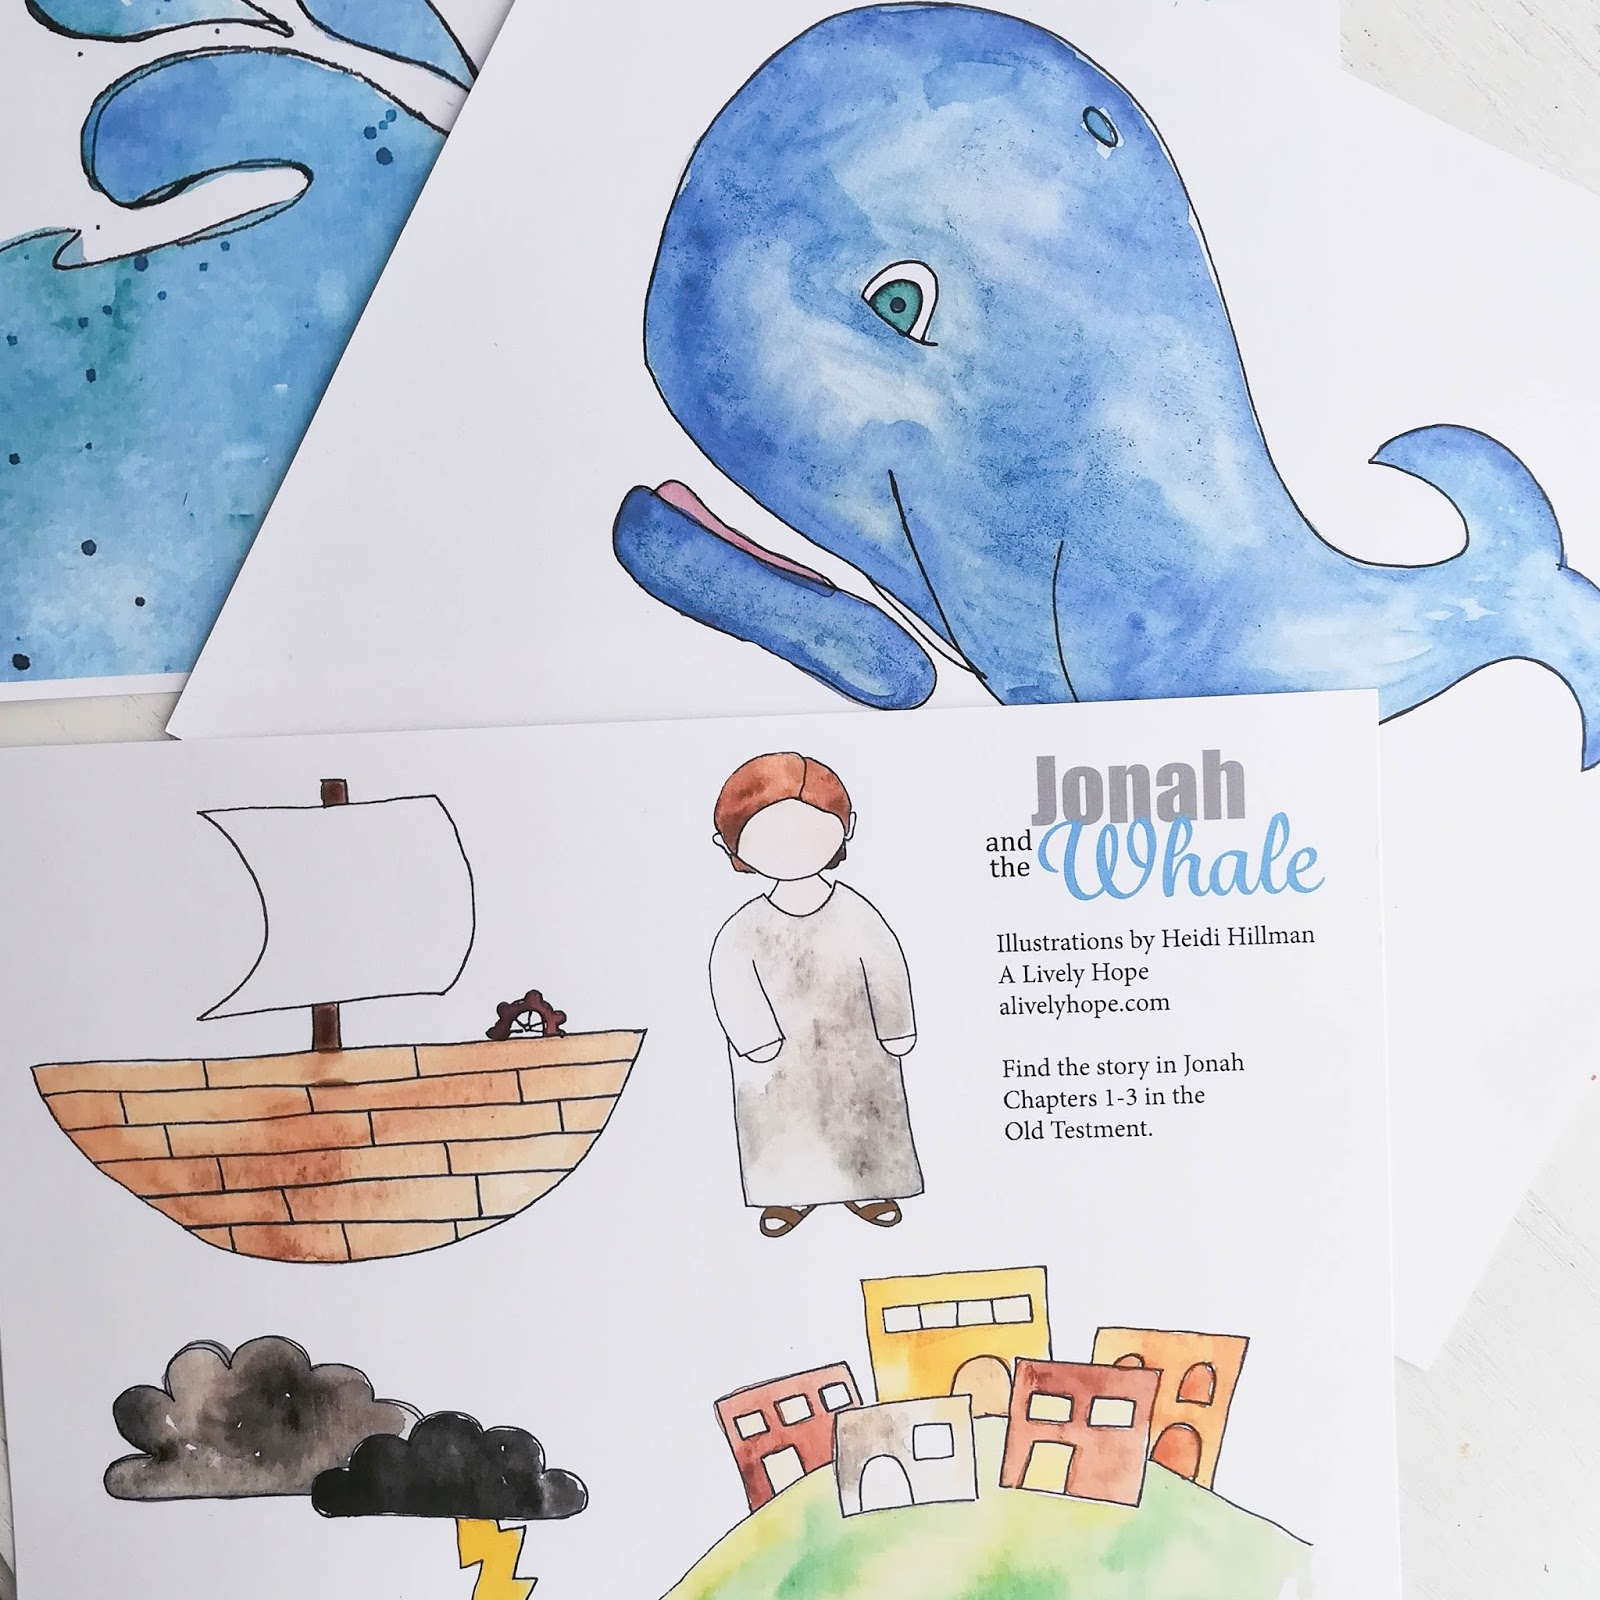 graphic about Jonah and the Whale Printable referred to as A Energetic Assume: Jonah and the Whale Paper Perform Established (no cost